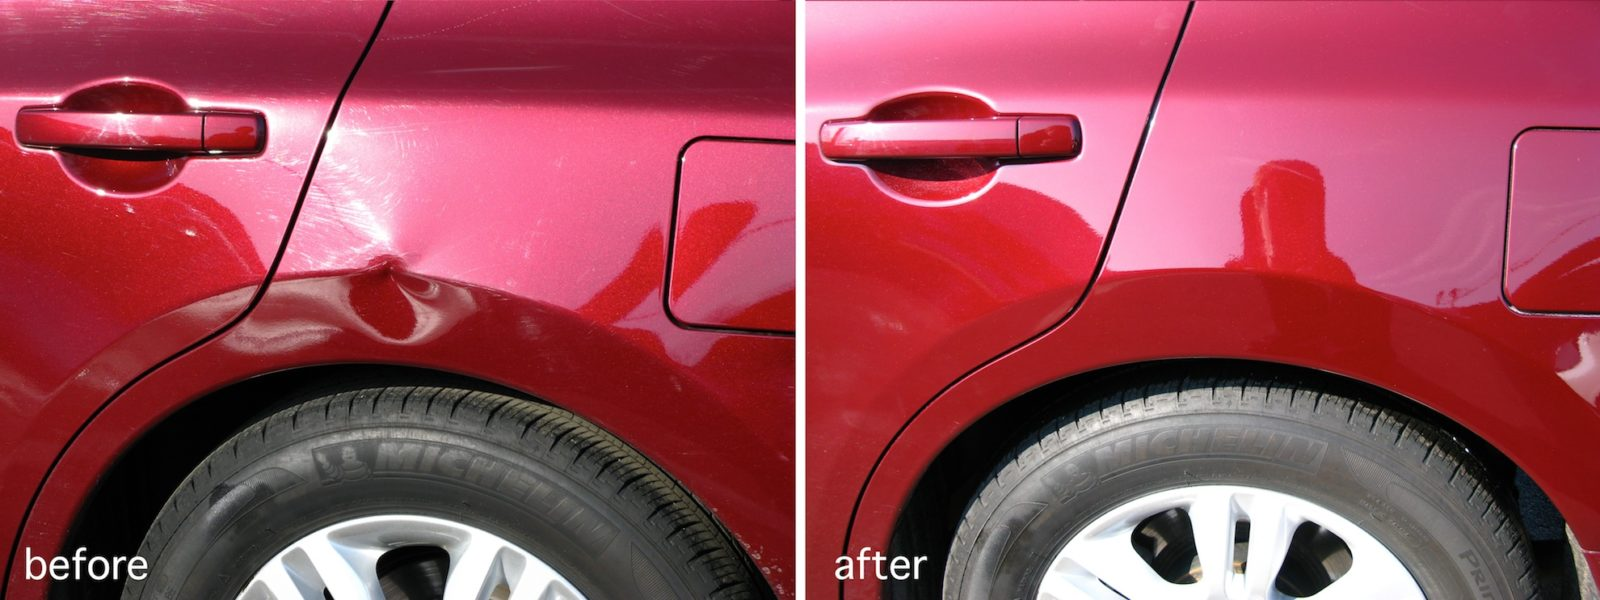 Benefits of Paintless Dent Repair